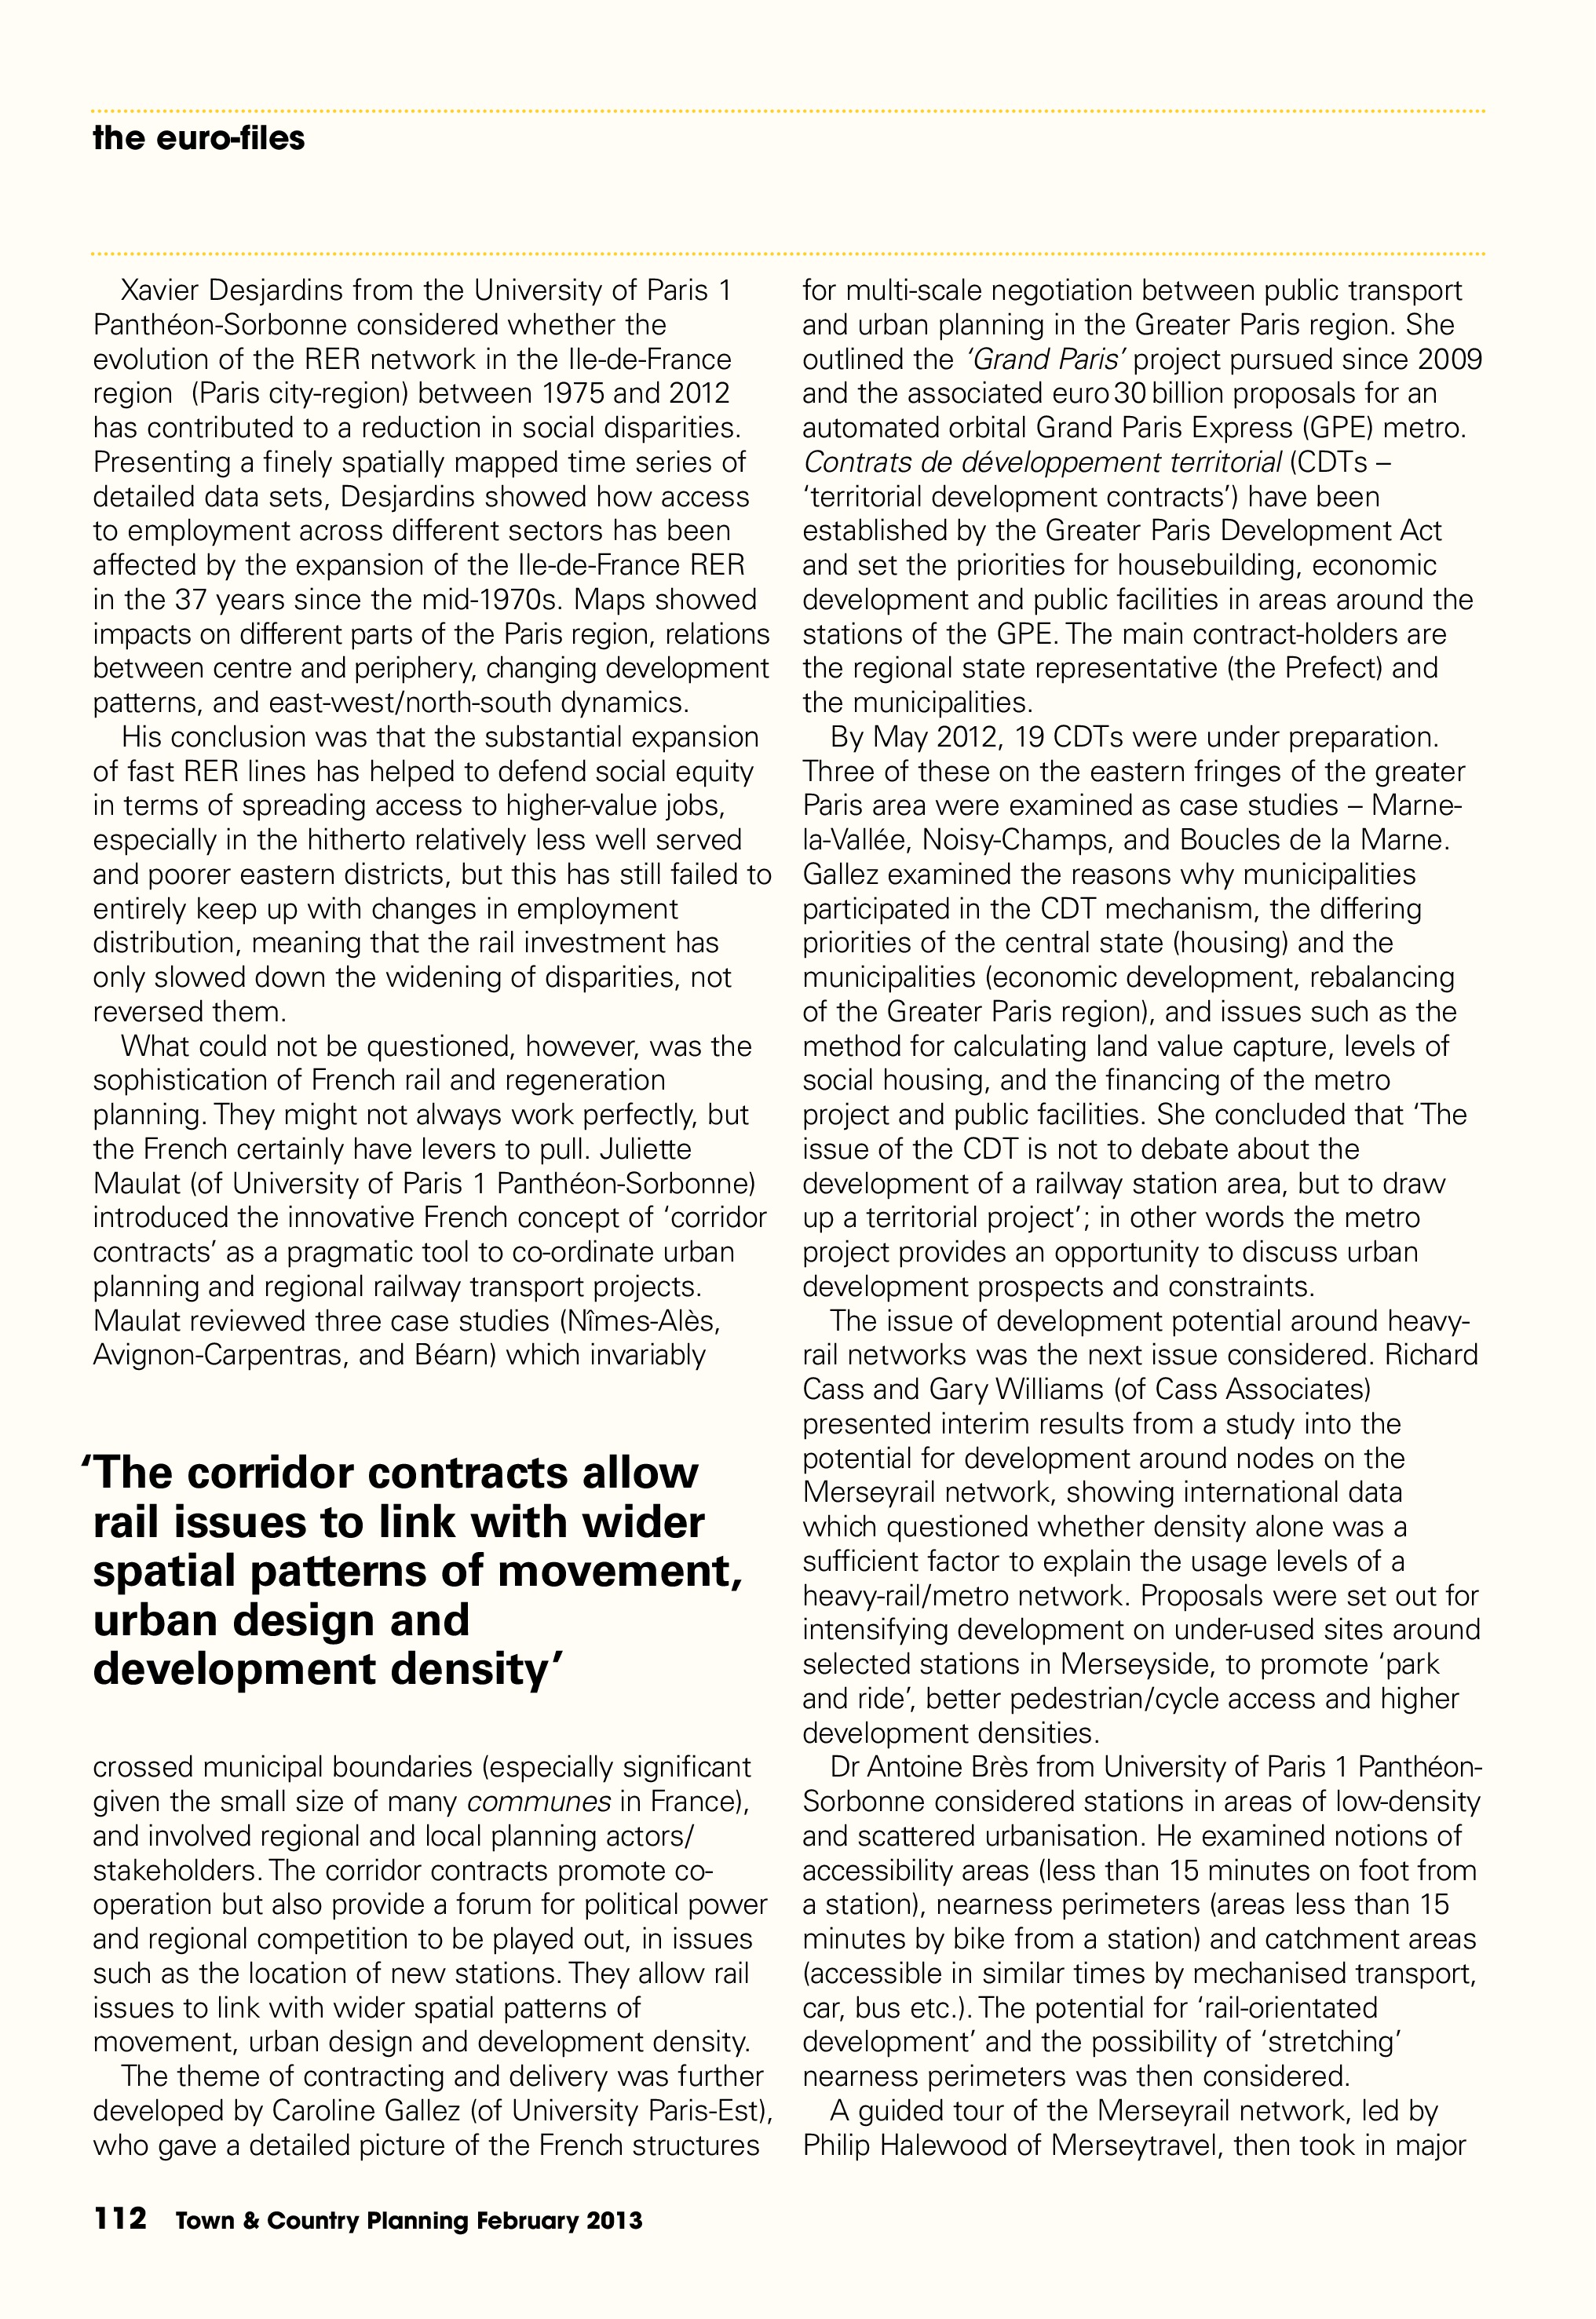 Town & Country Planning Association Journal, February 2013: 'Pulling the Right Levers' - 2nd Liverpool-Paris Rail Group Conference, p3/6